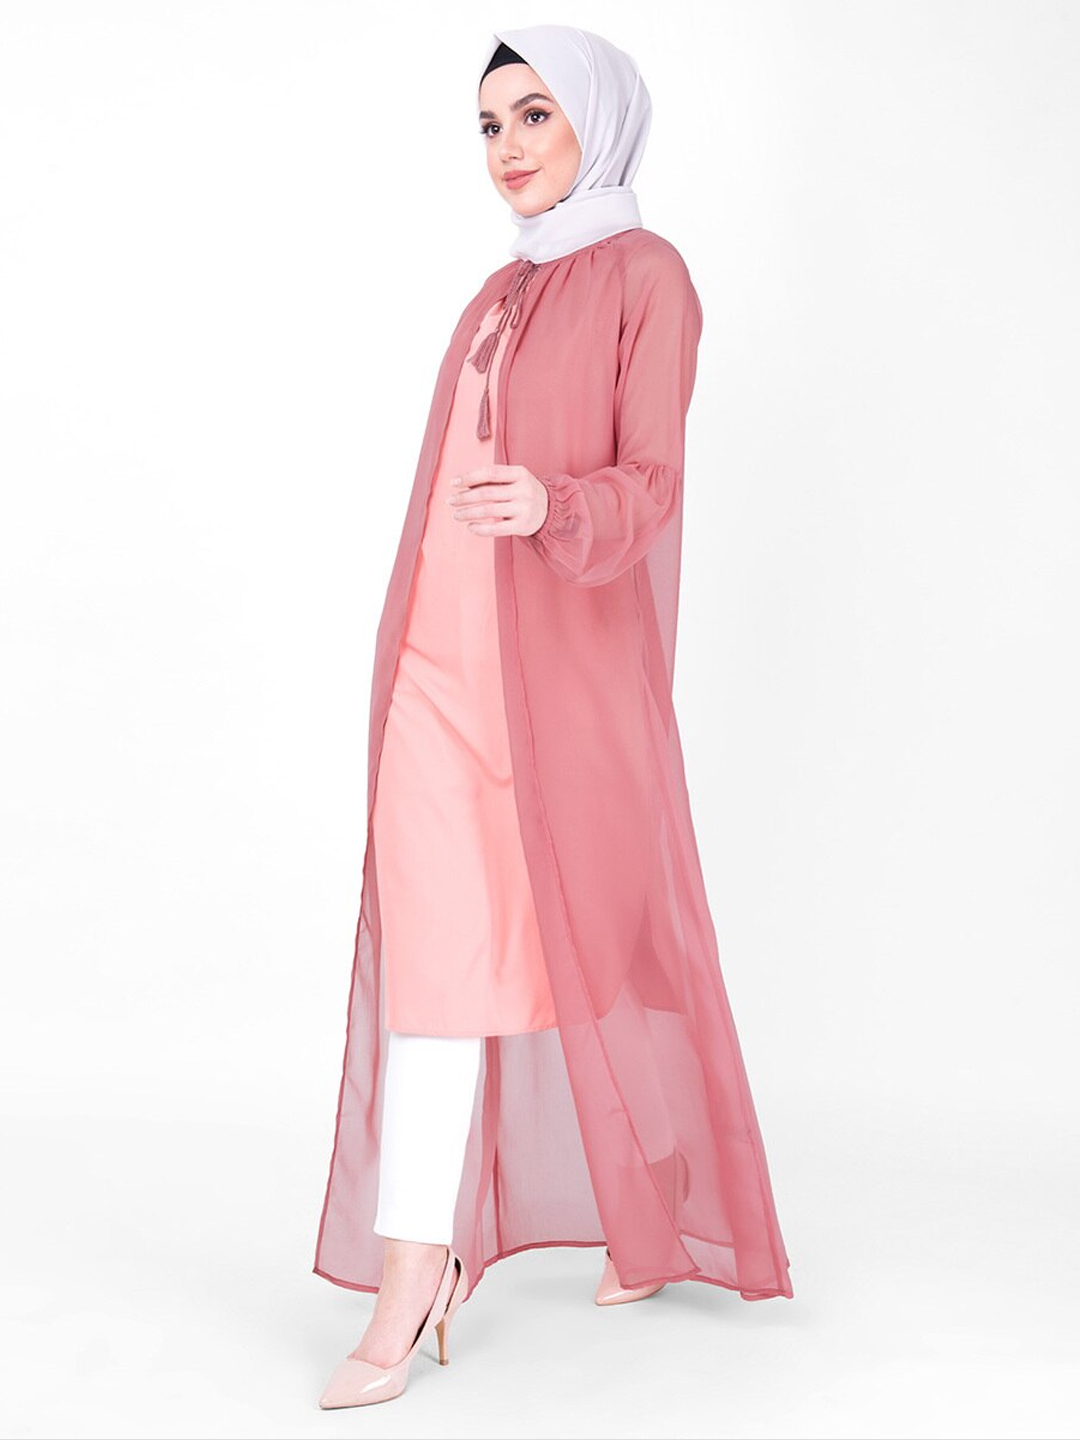 100% Georgette Gathered Neck Sheer Outerwear In Pink